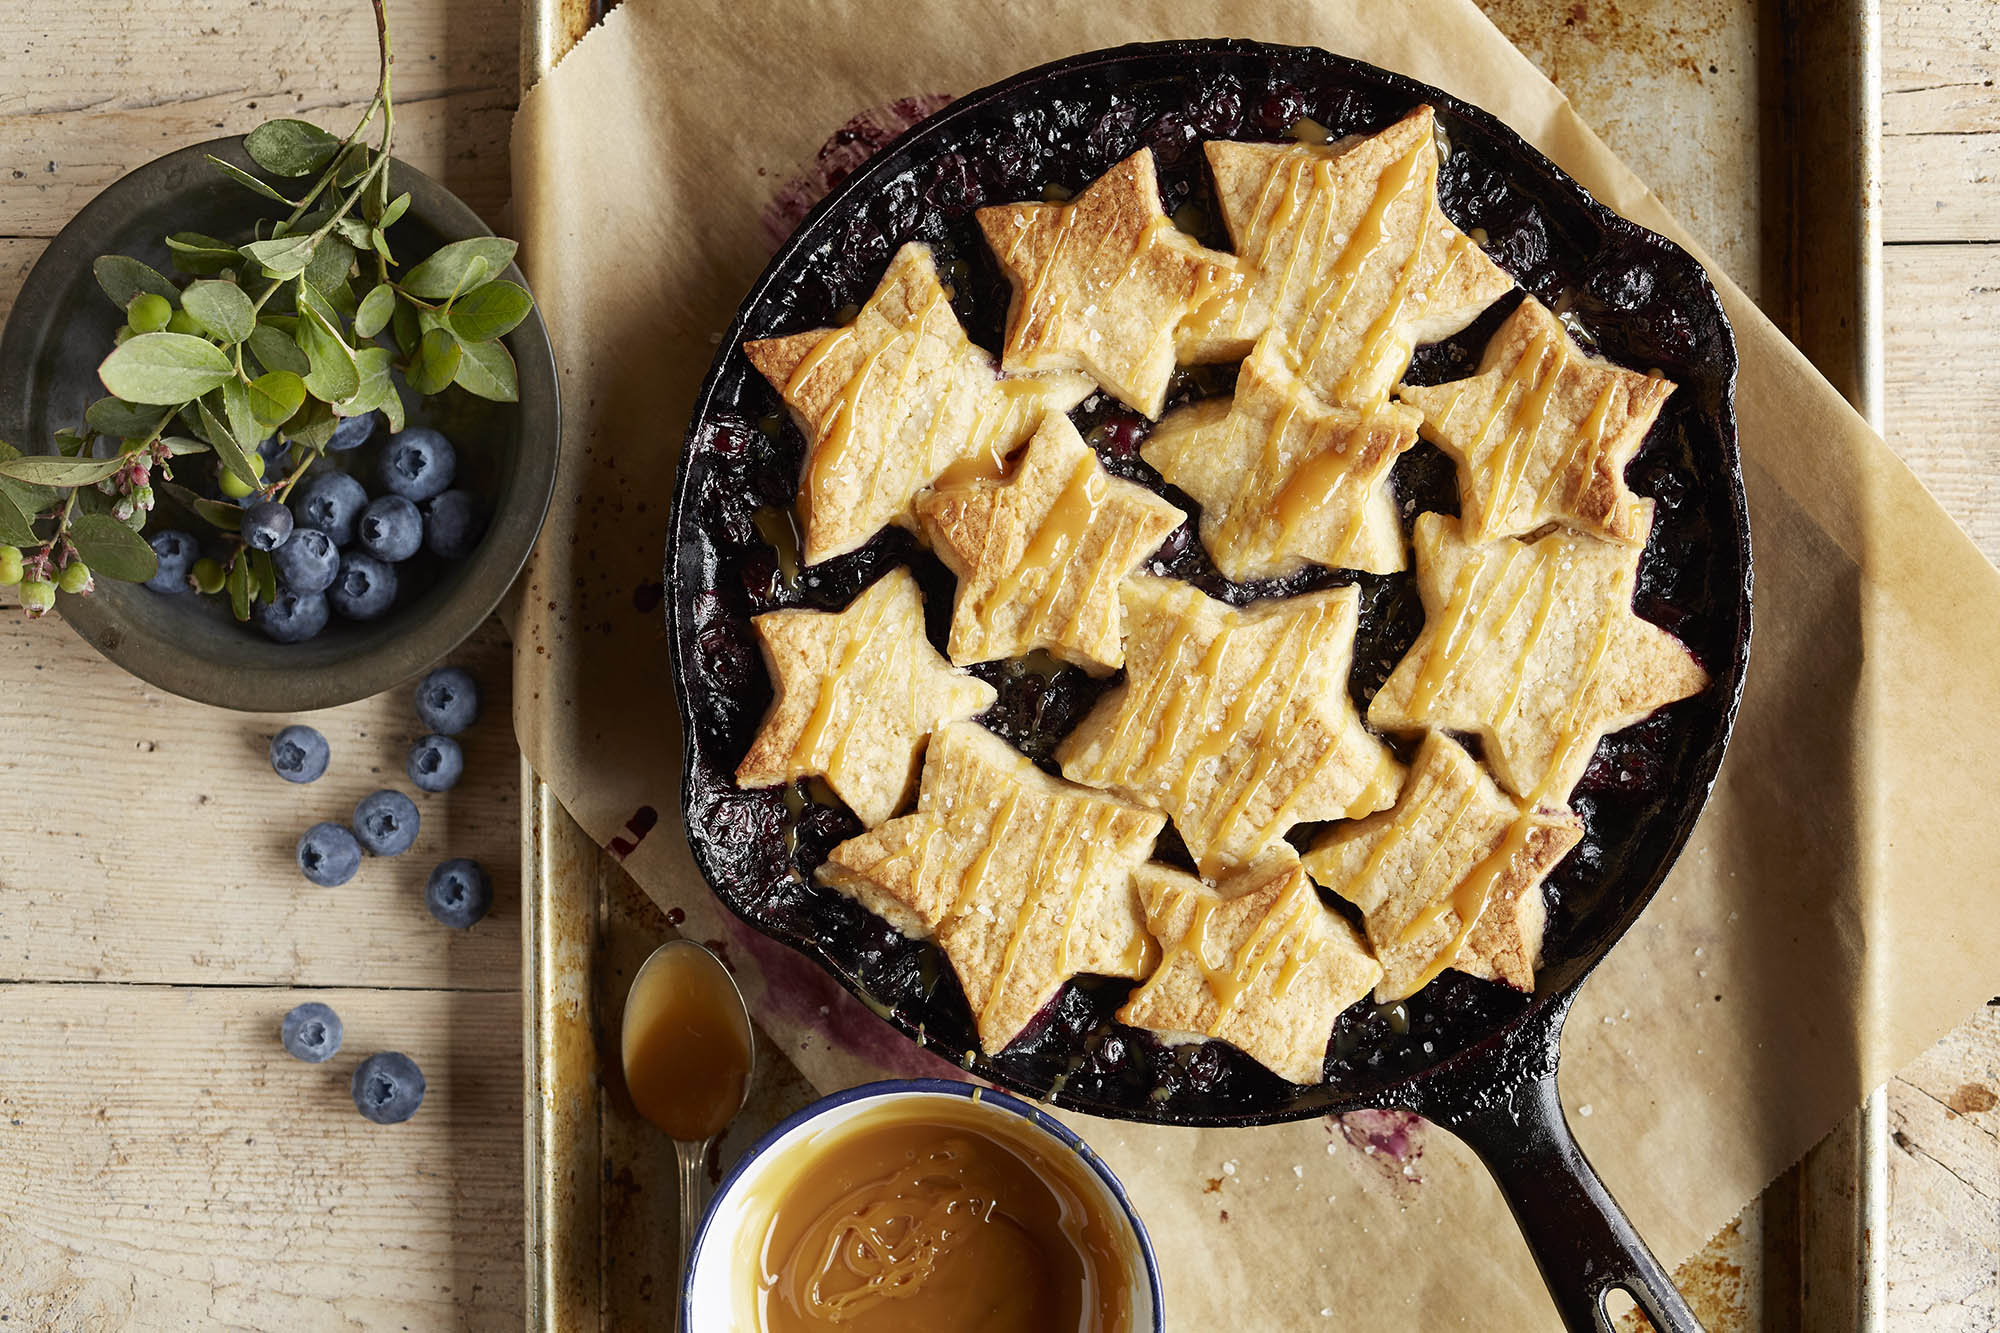 Blueberry Salted Caramel Cobbler Recipe